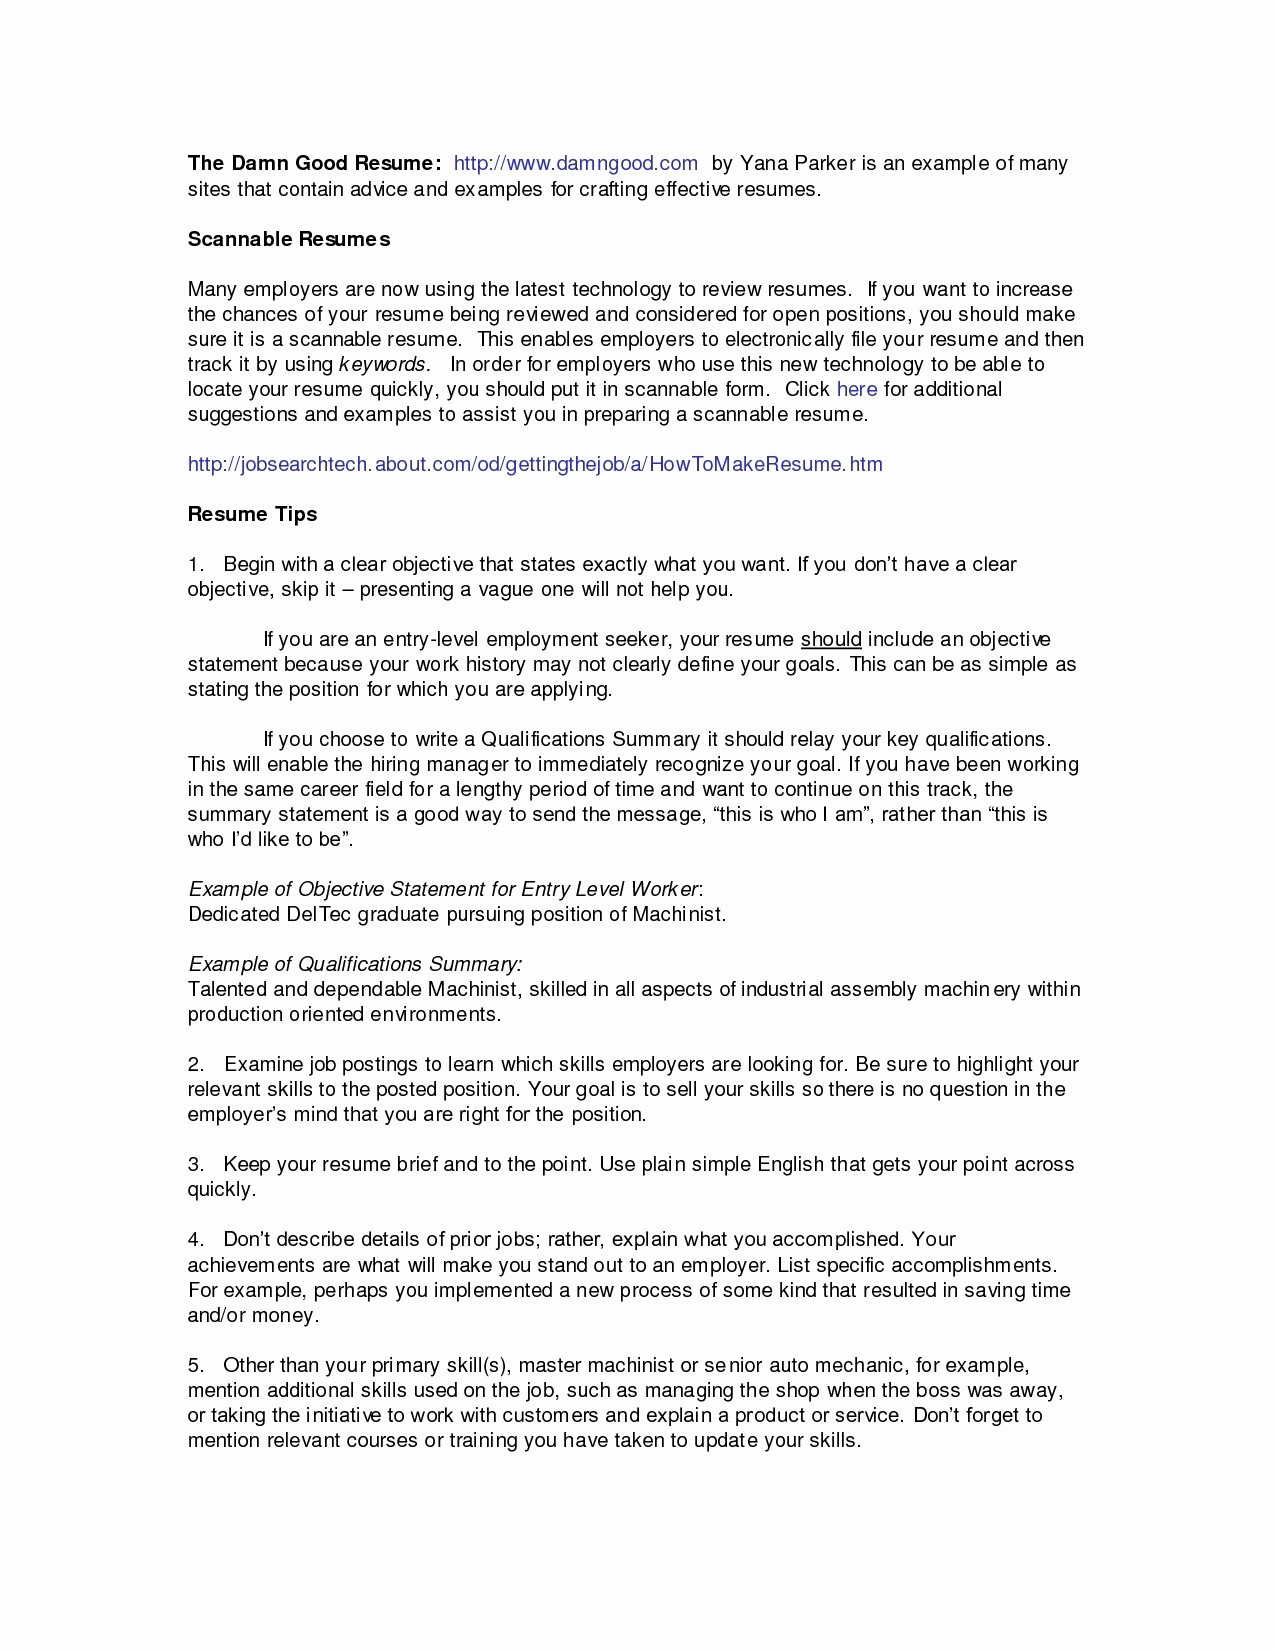 school counselor resume example-Guidance Counselor Resume 18 Guidance Counselor Resume 10-r